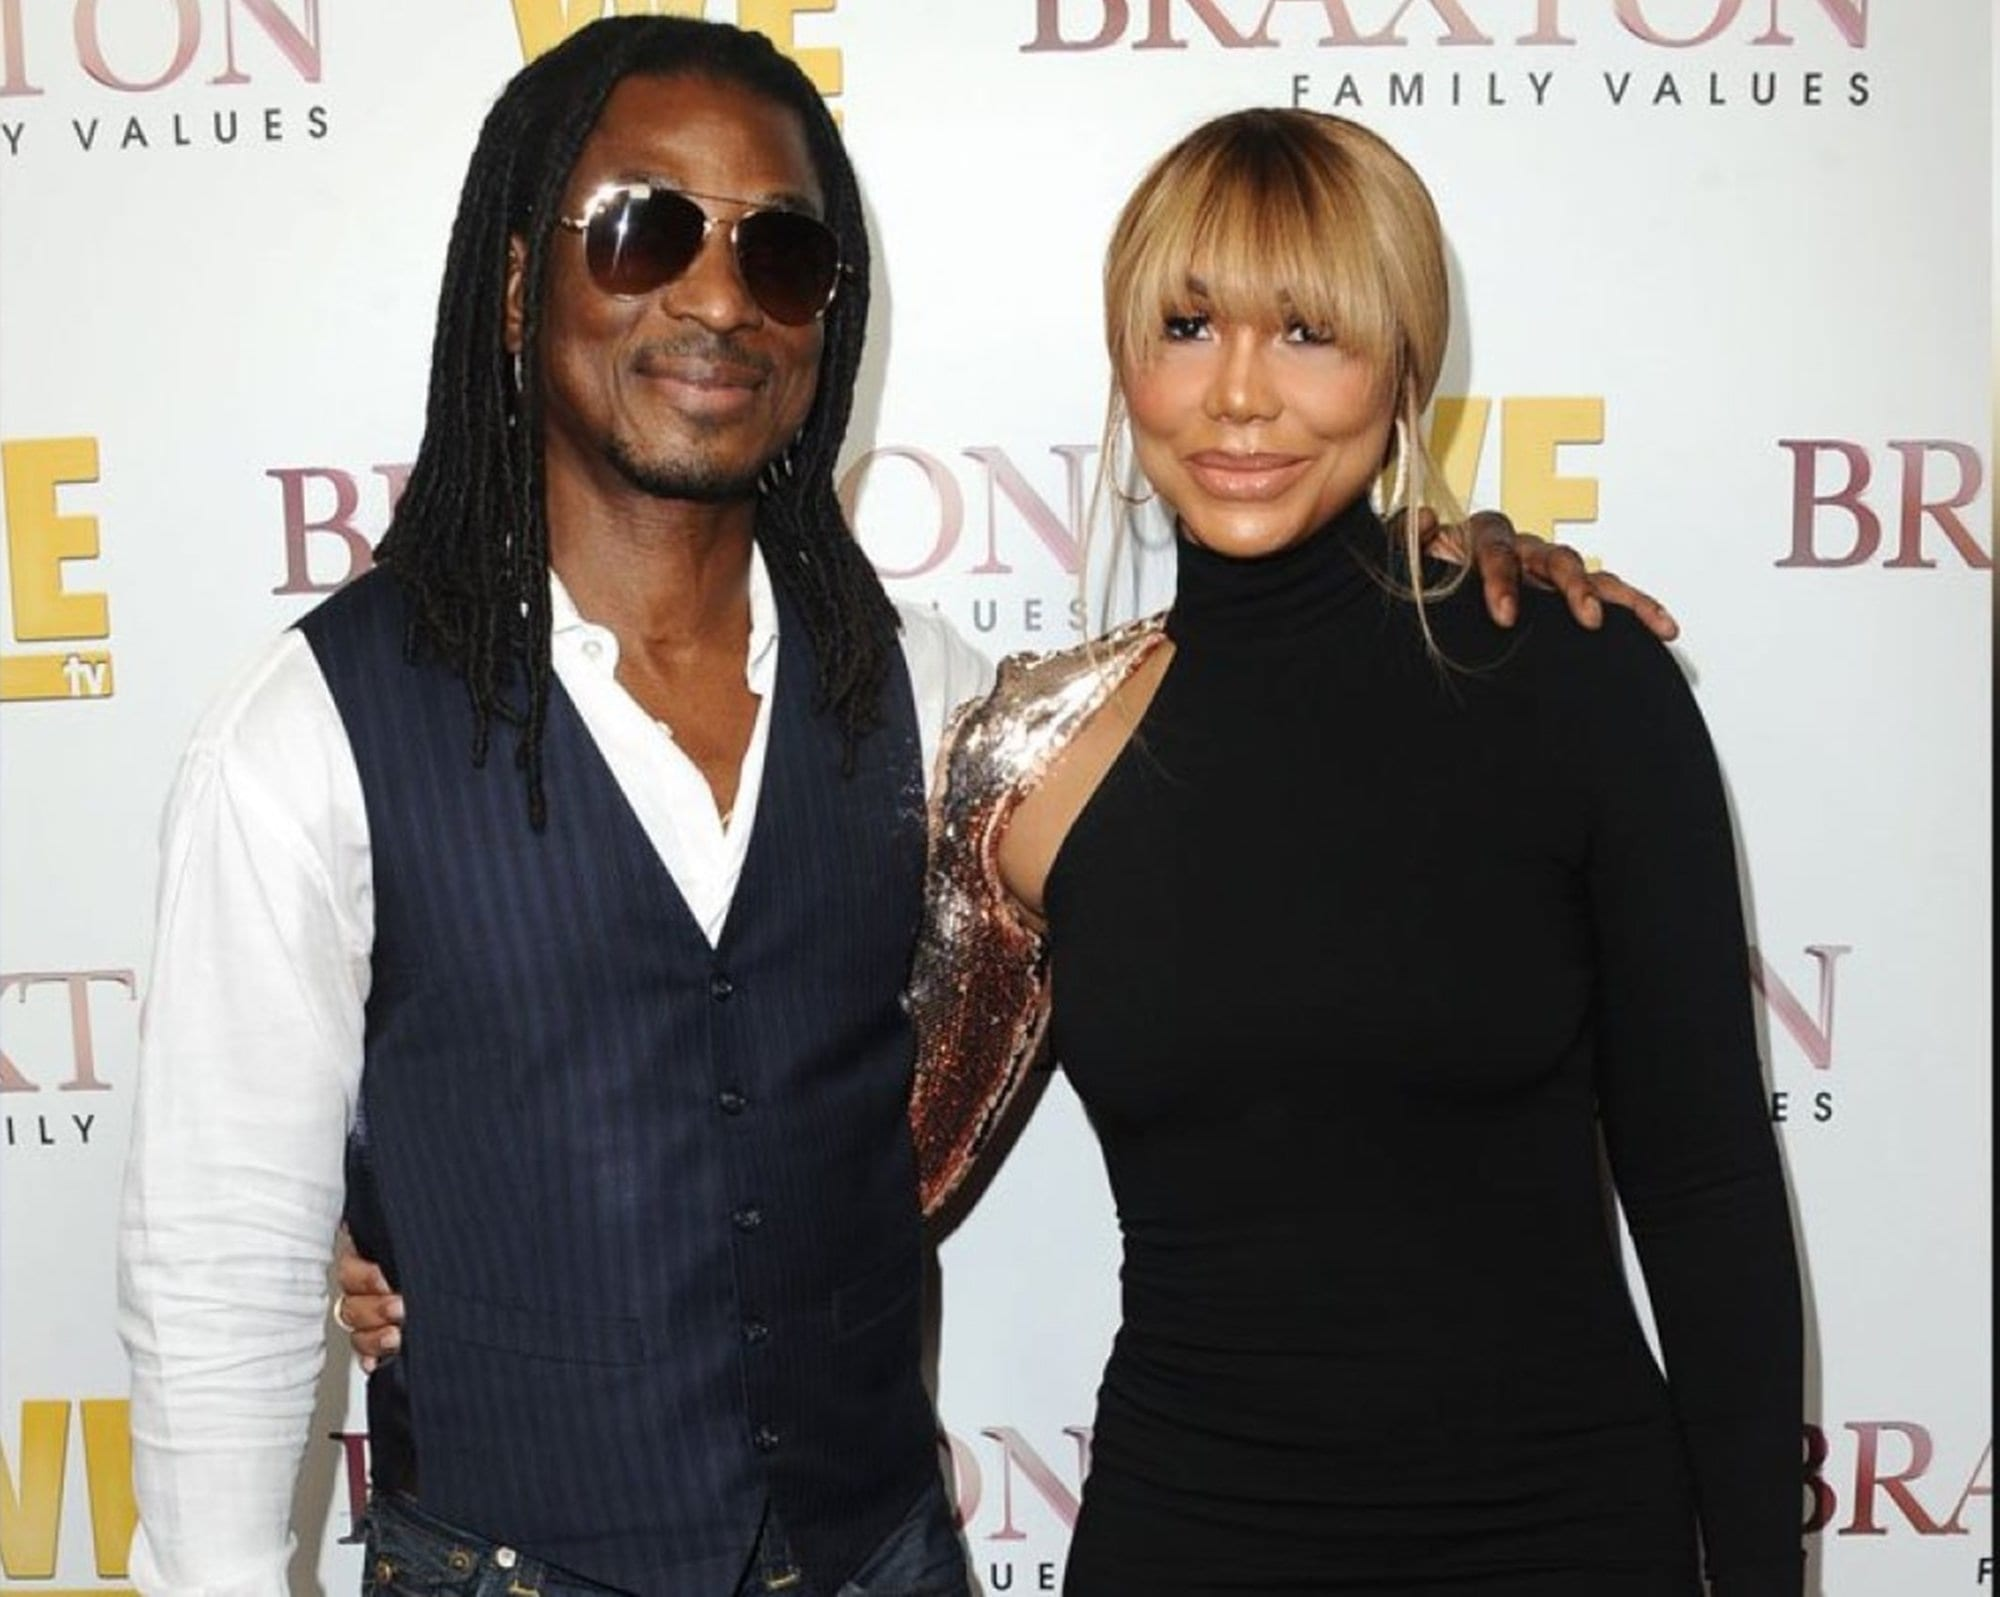 Tamar Braxton's BF, David Adefeso Took Part At The Protests: 'Your Silence In A Luxury'